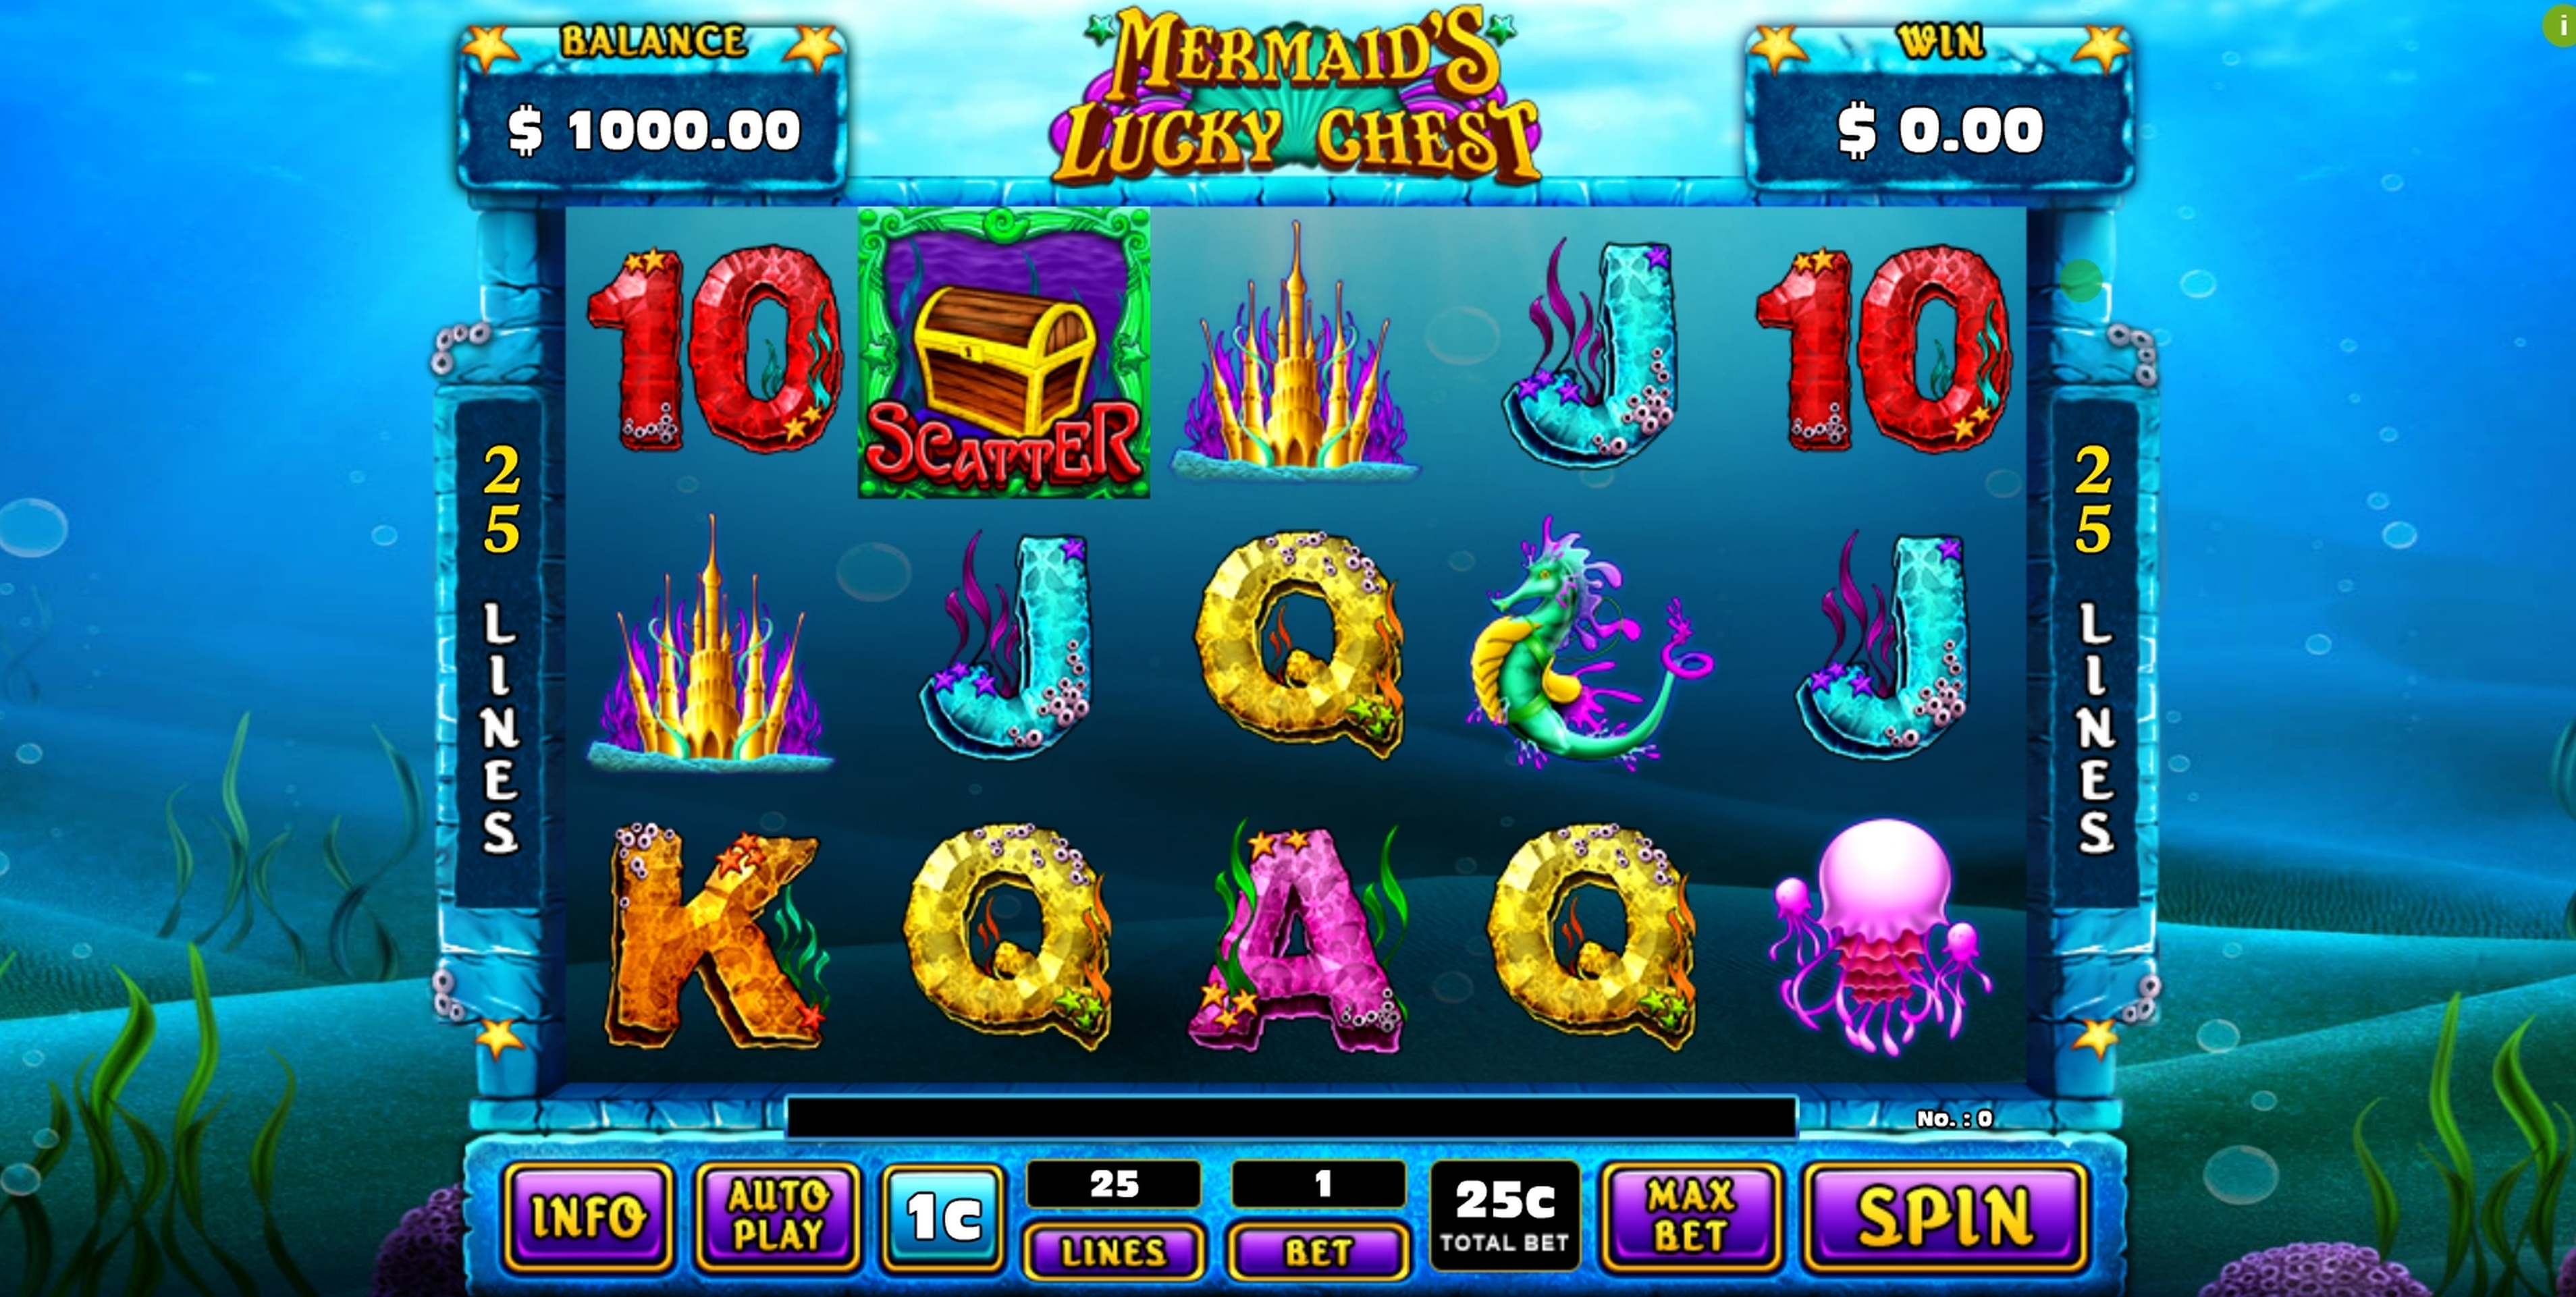 Reels in Mermaid's Lucky Chest Slot Game by GMW